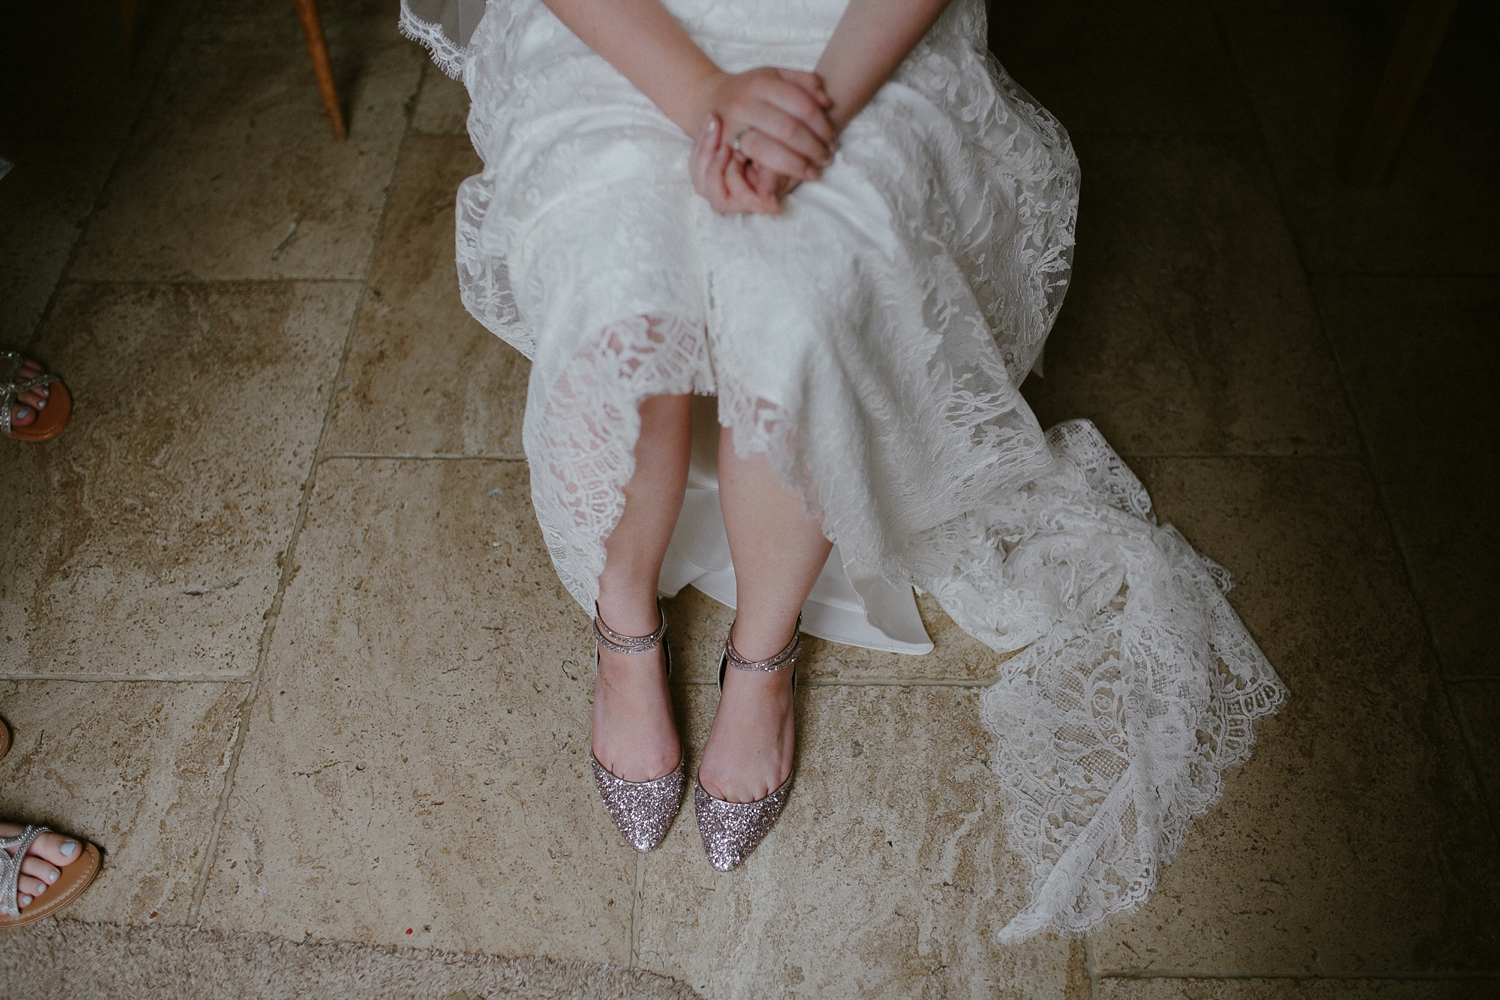 Beautiful bride Hannah wore a lace wedding dress by Halfpenny London